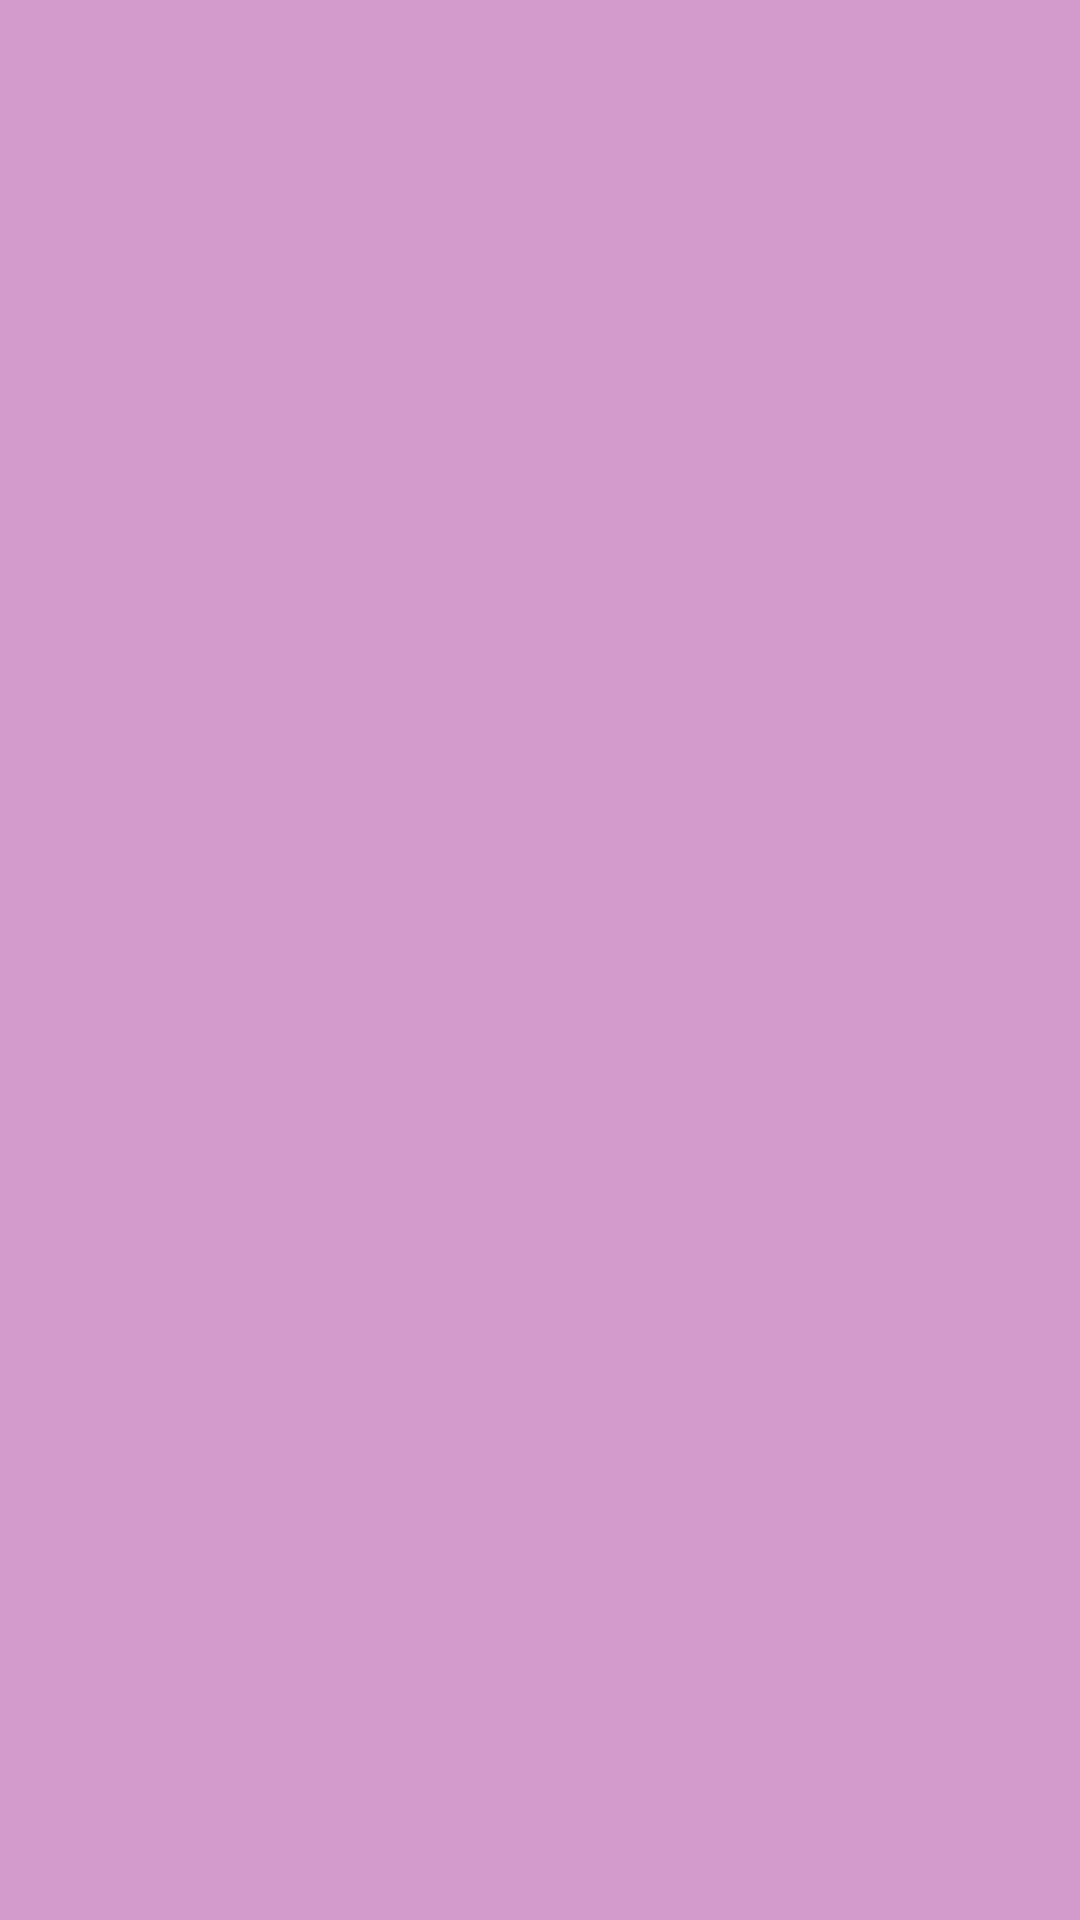 1080x1920 Light Medium Orchid Solid Color Background